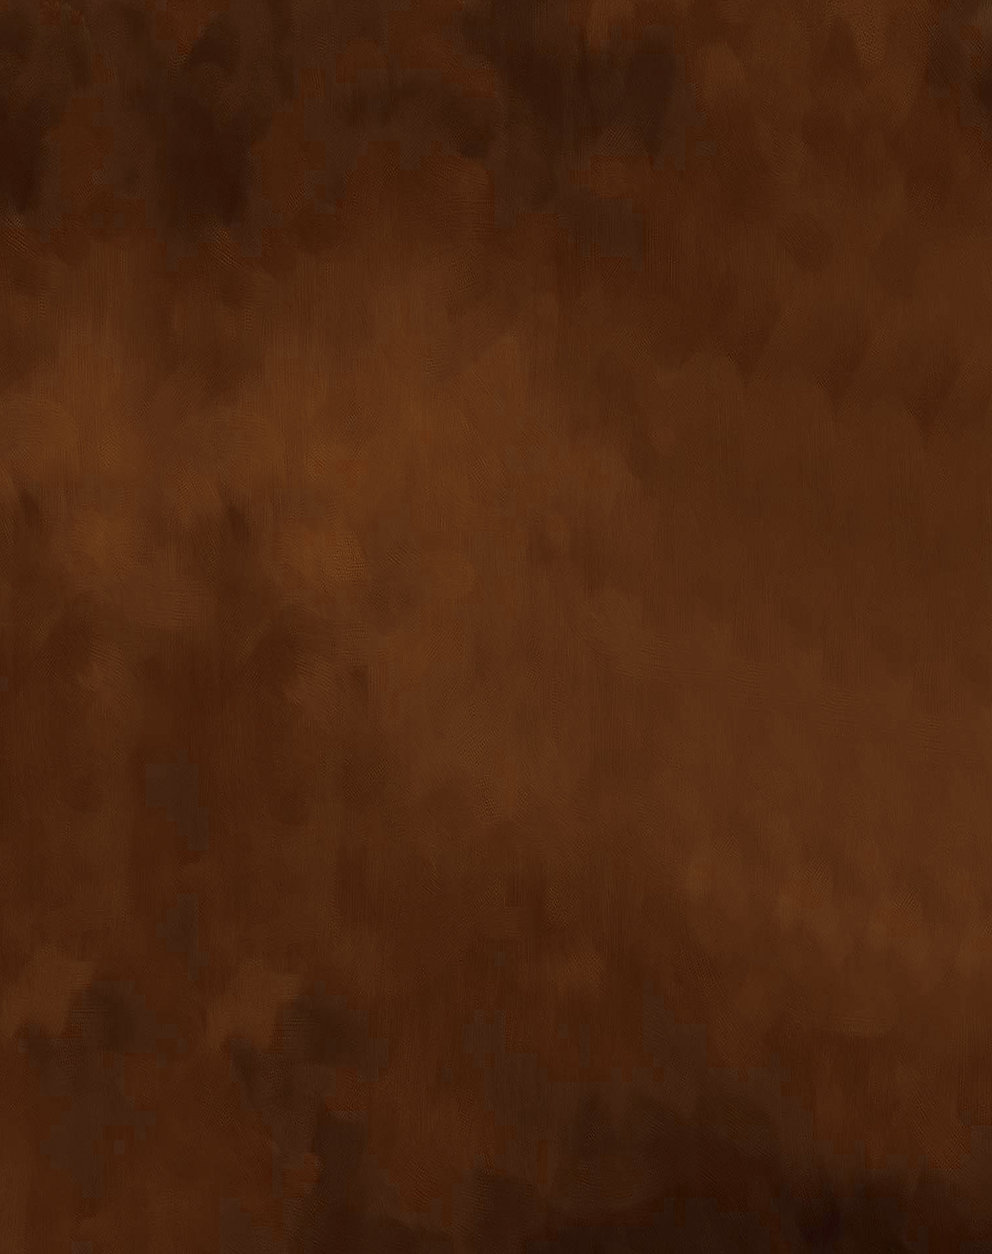 BROWN BACKGROUND UPDATED.jpg